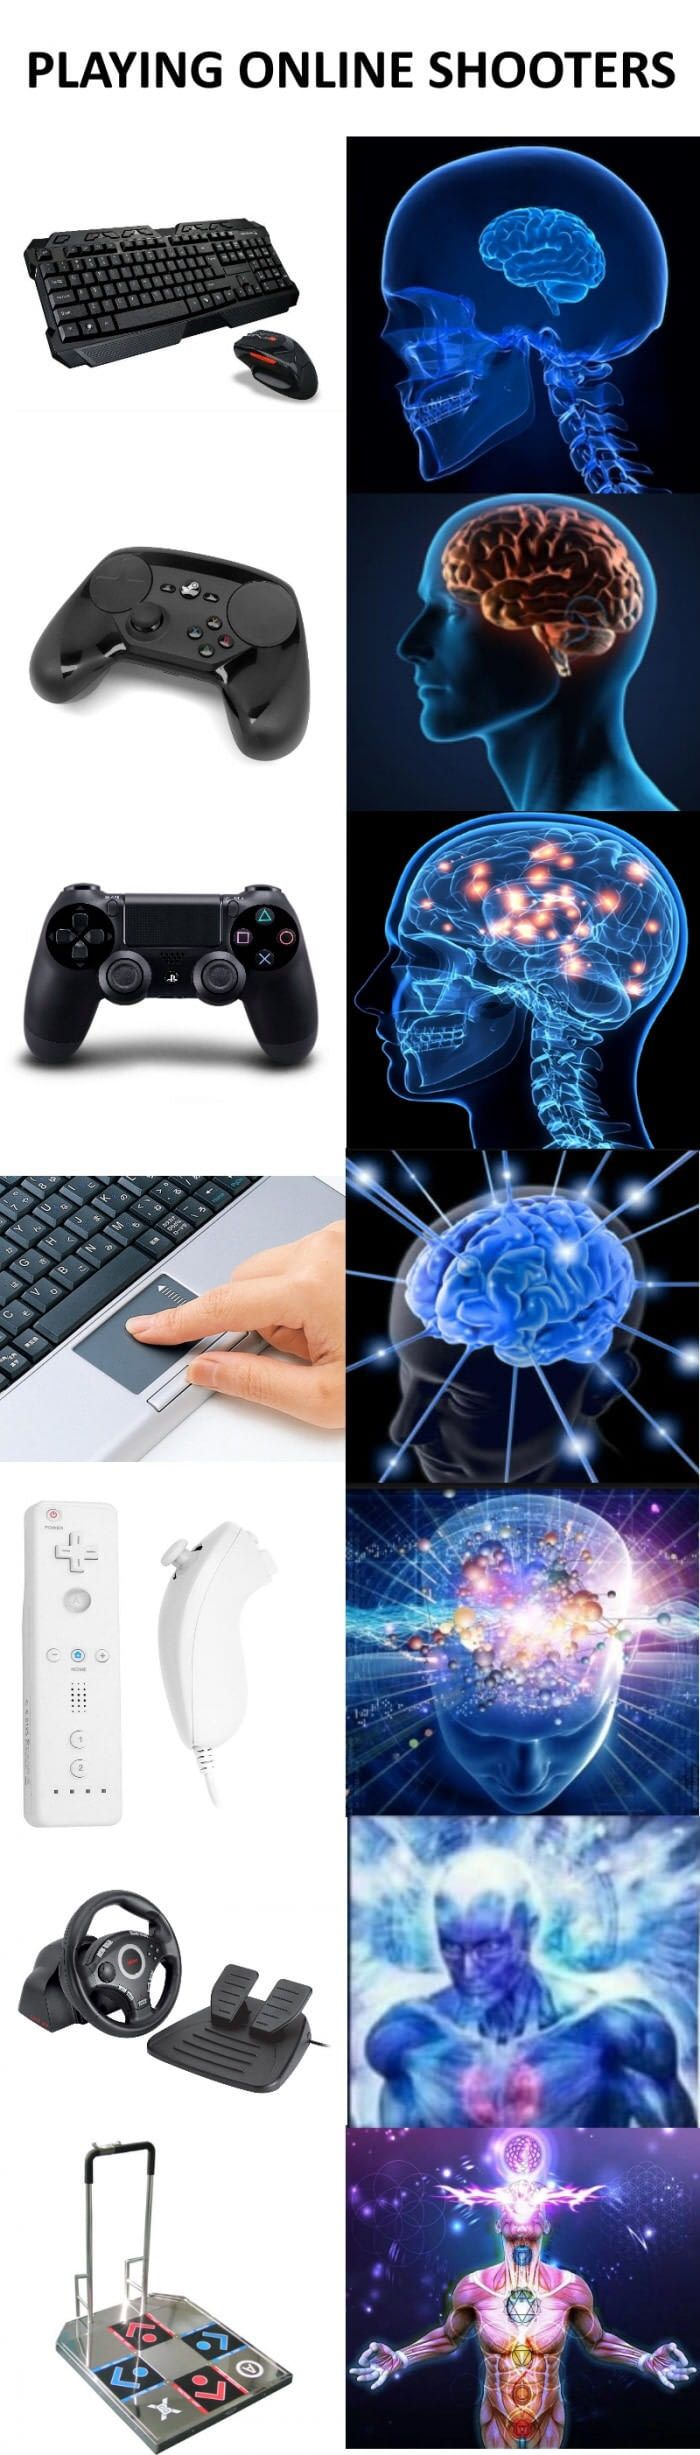 Try playing Minecraft with a laptop scrollerplaying shooter games with out a controller and some god level shit